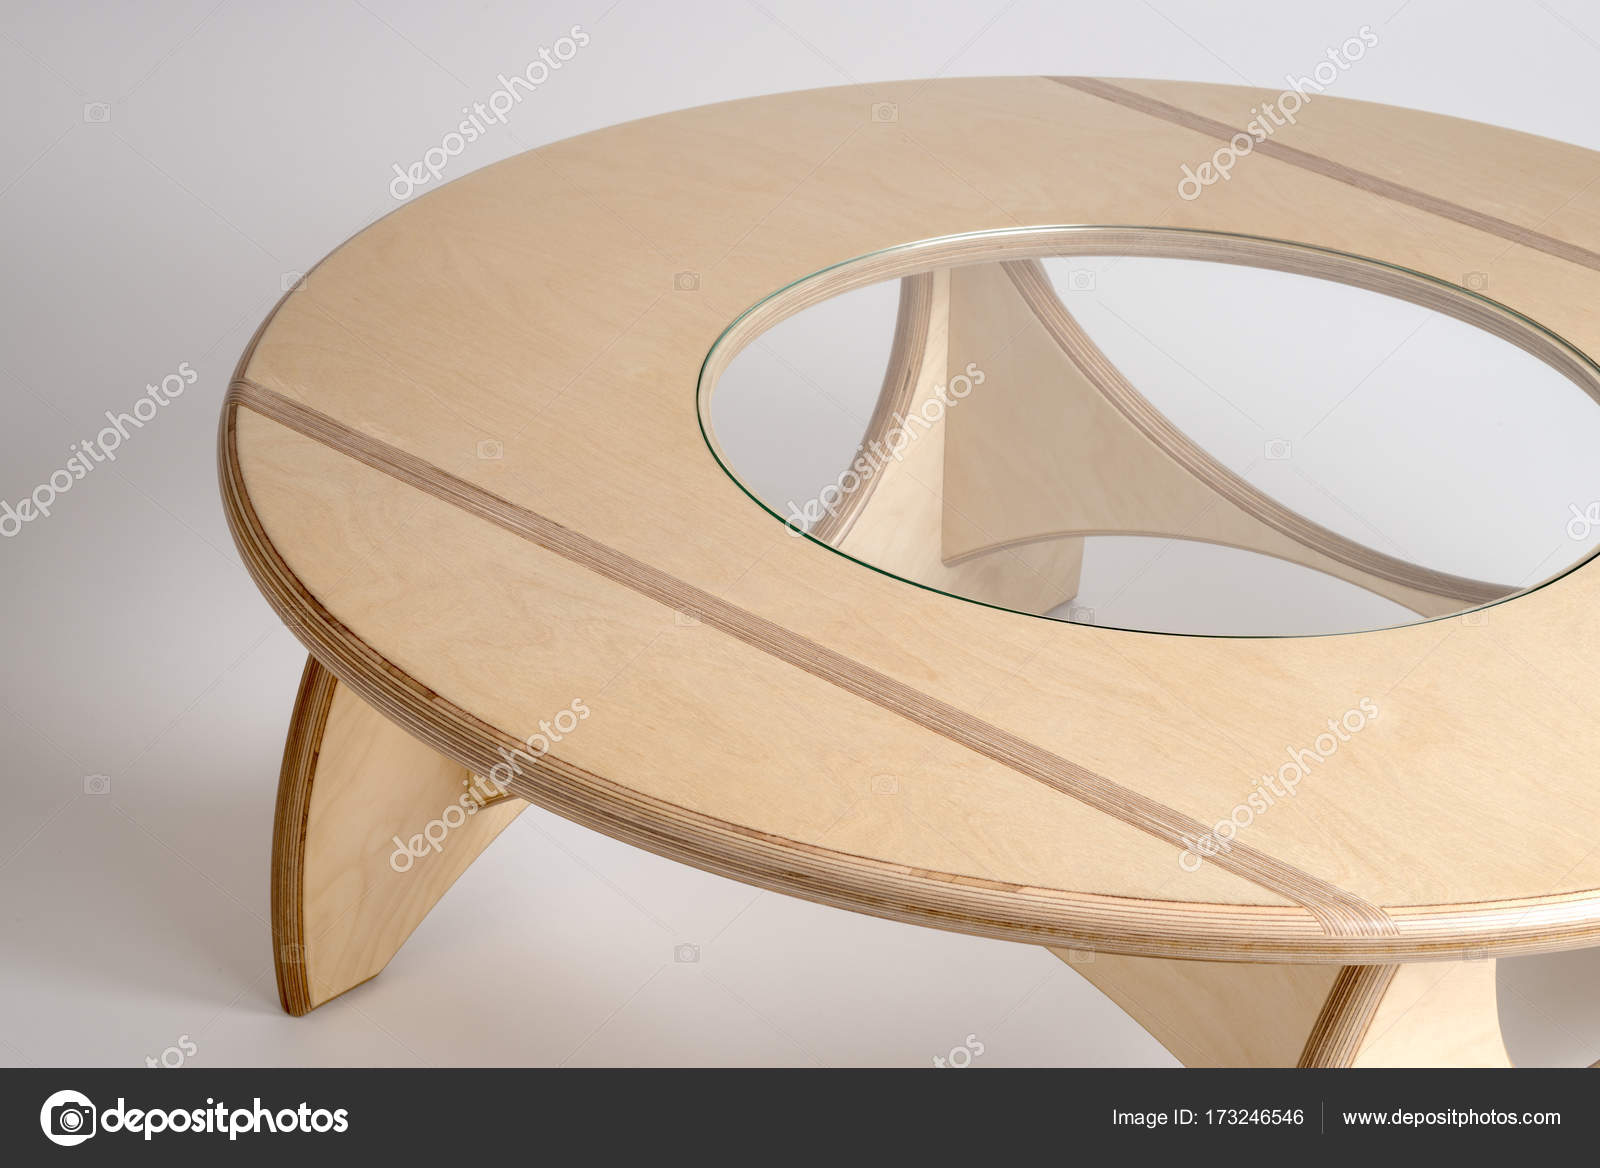 Round Table Madera.Angled Top View Of Bare Wood Designer Round Table Stock Photo